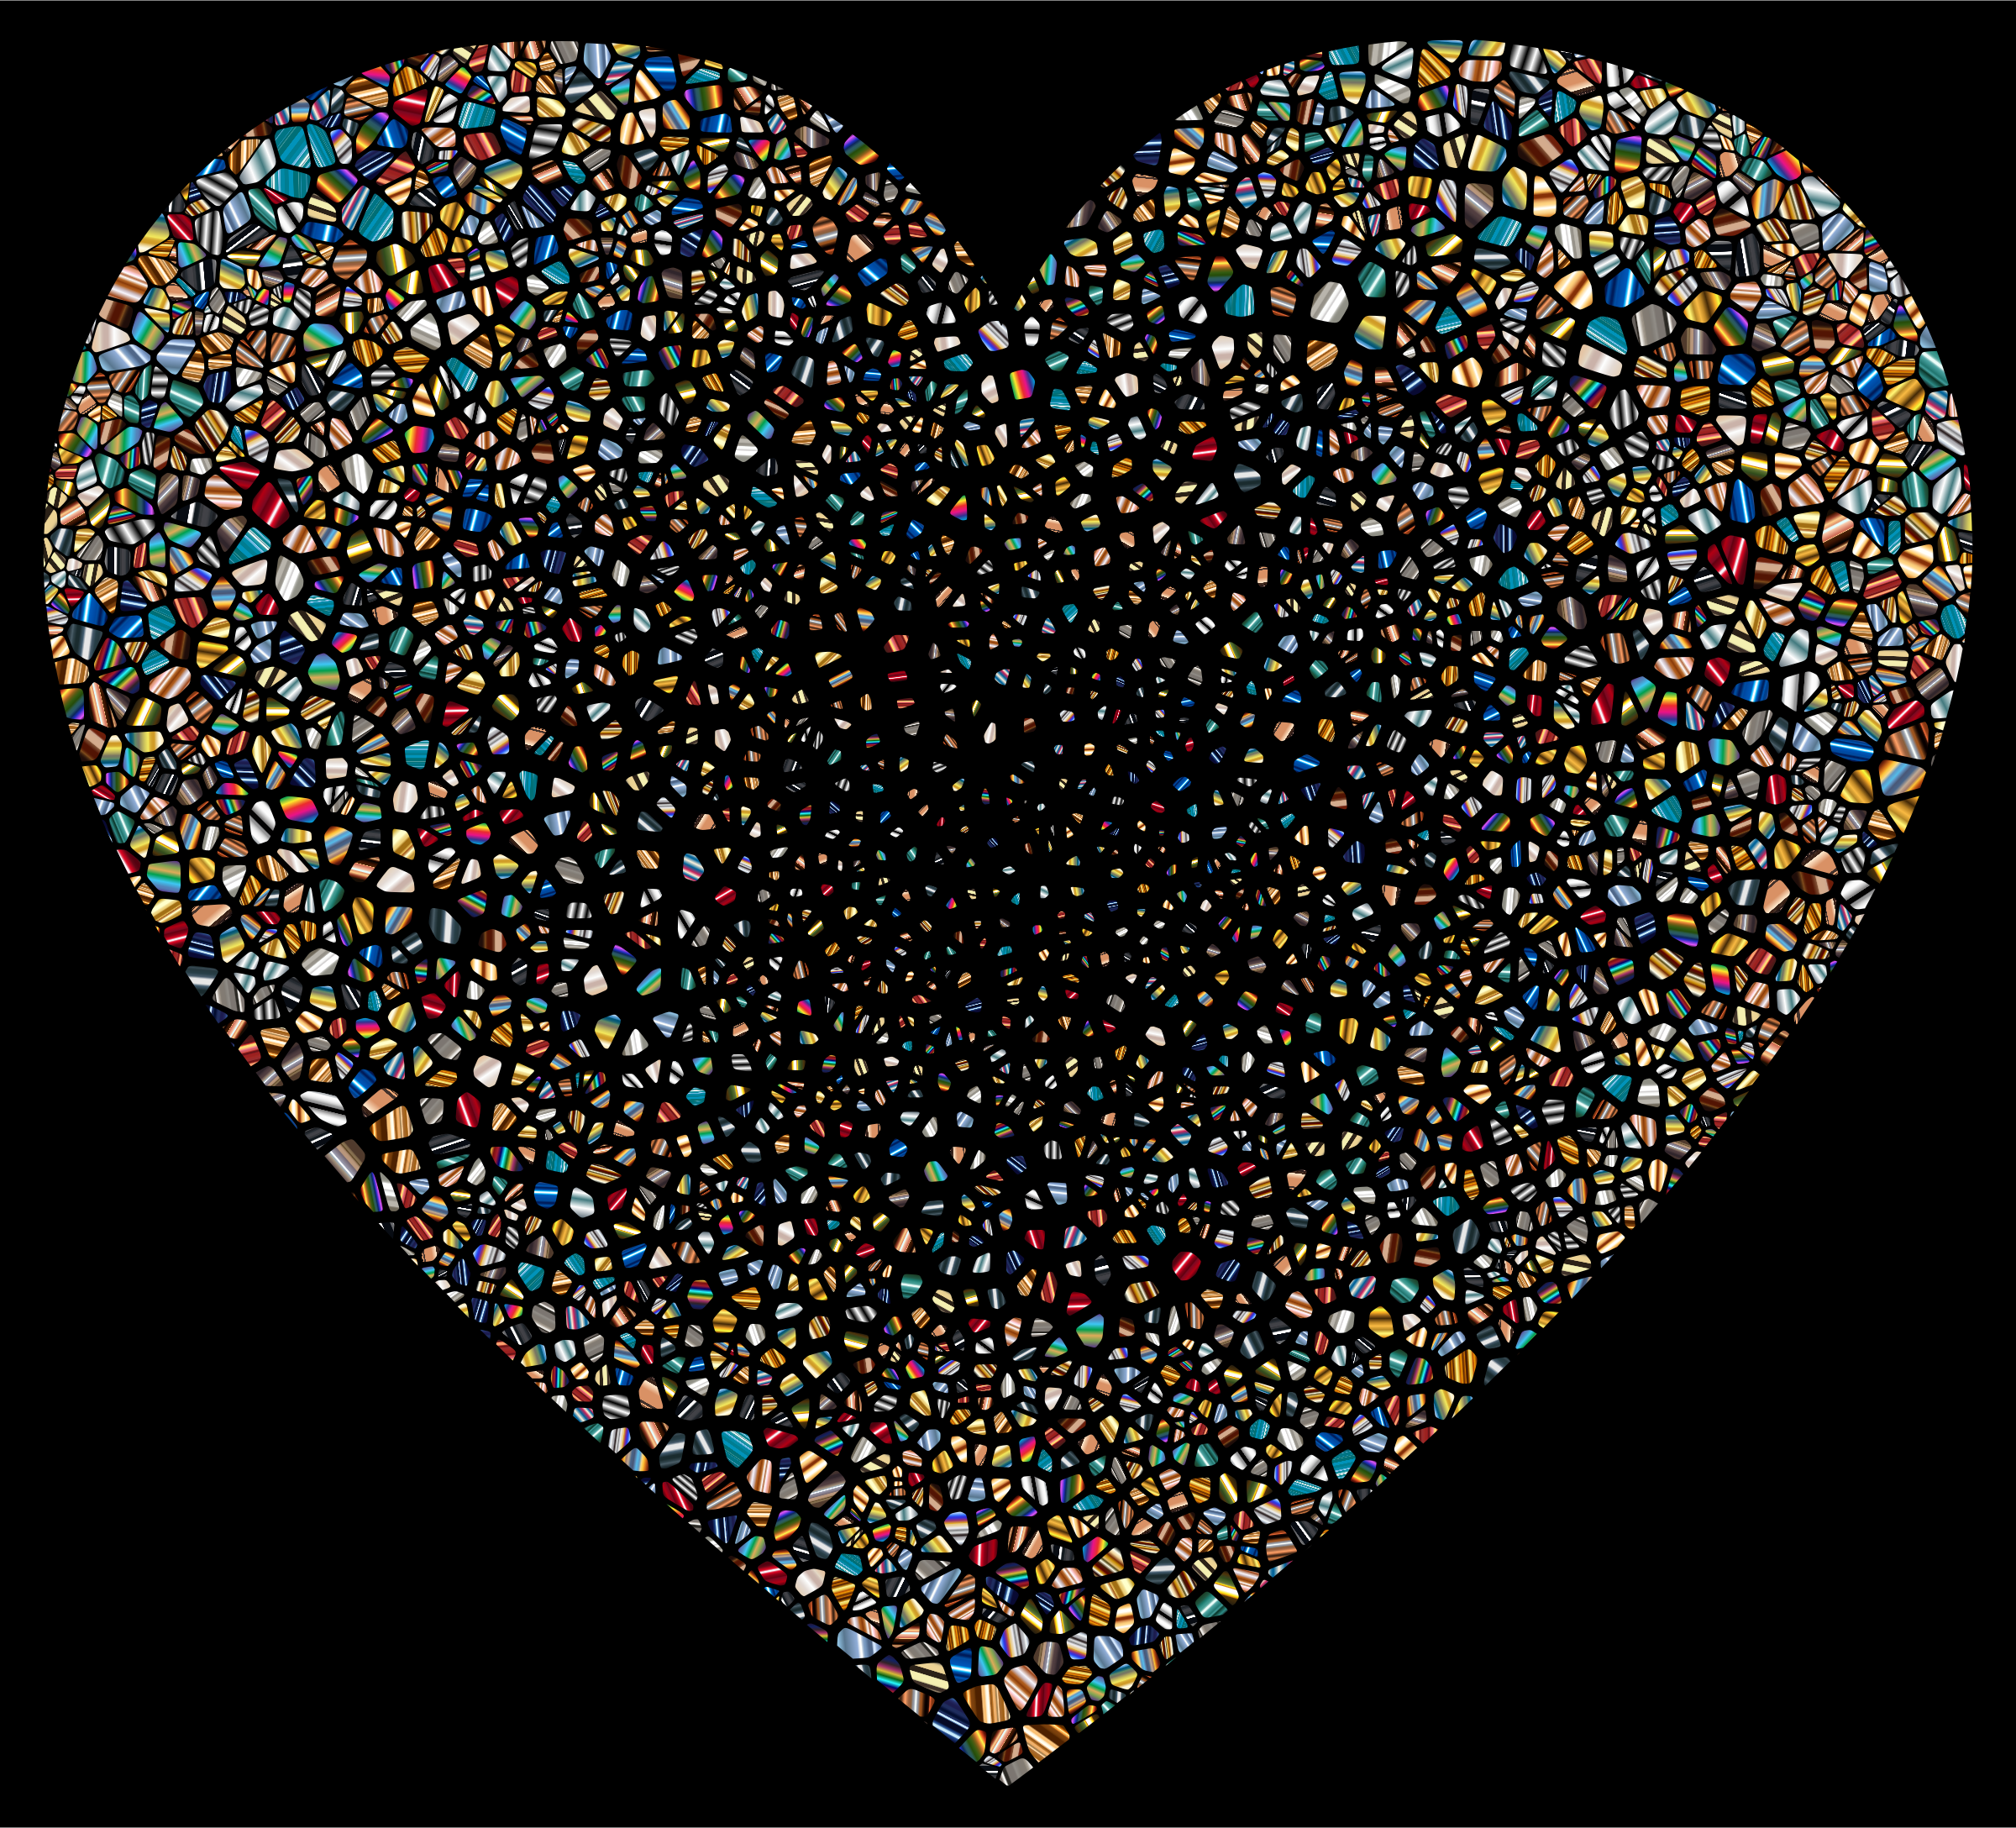 Psychedelic Shattered Tiled Heart by GDJ